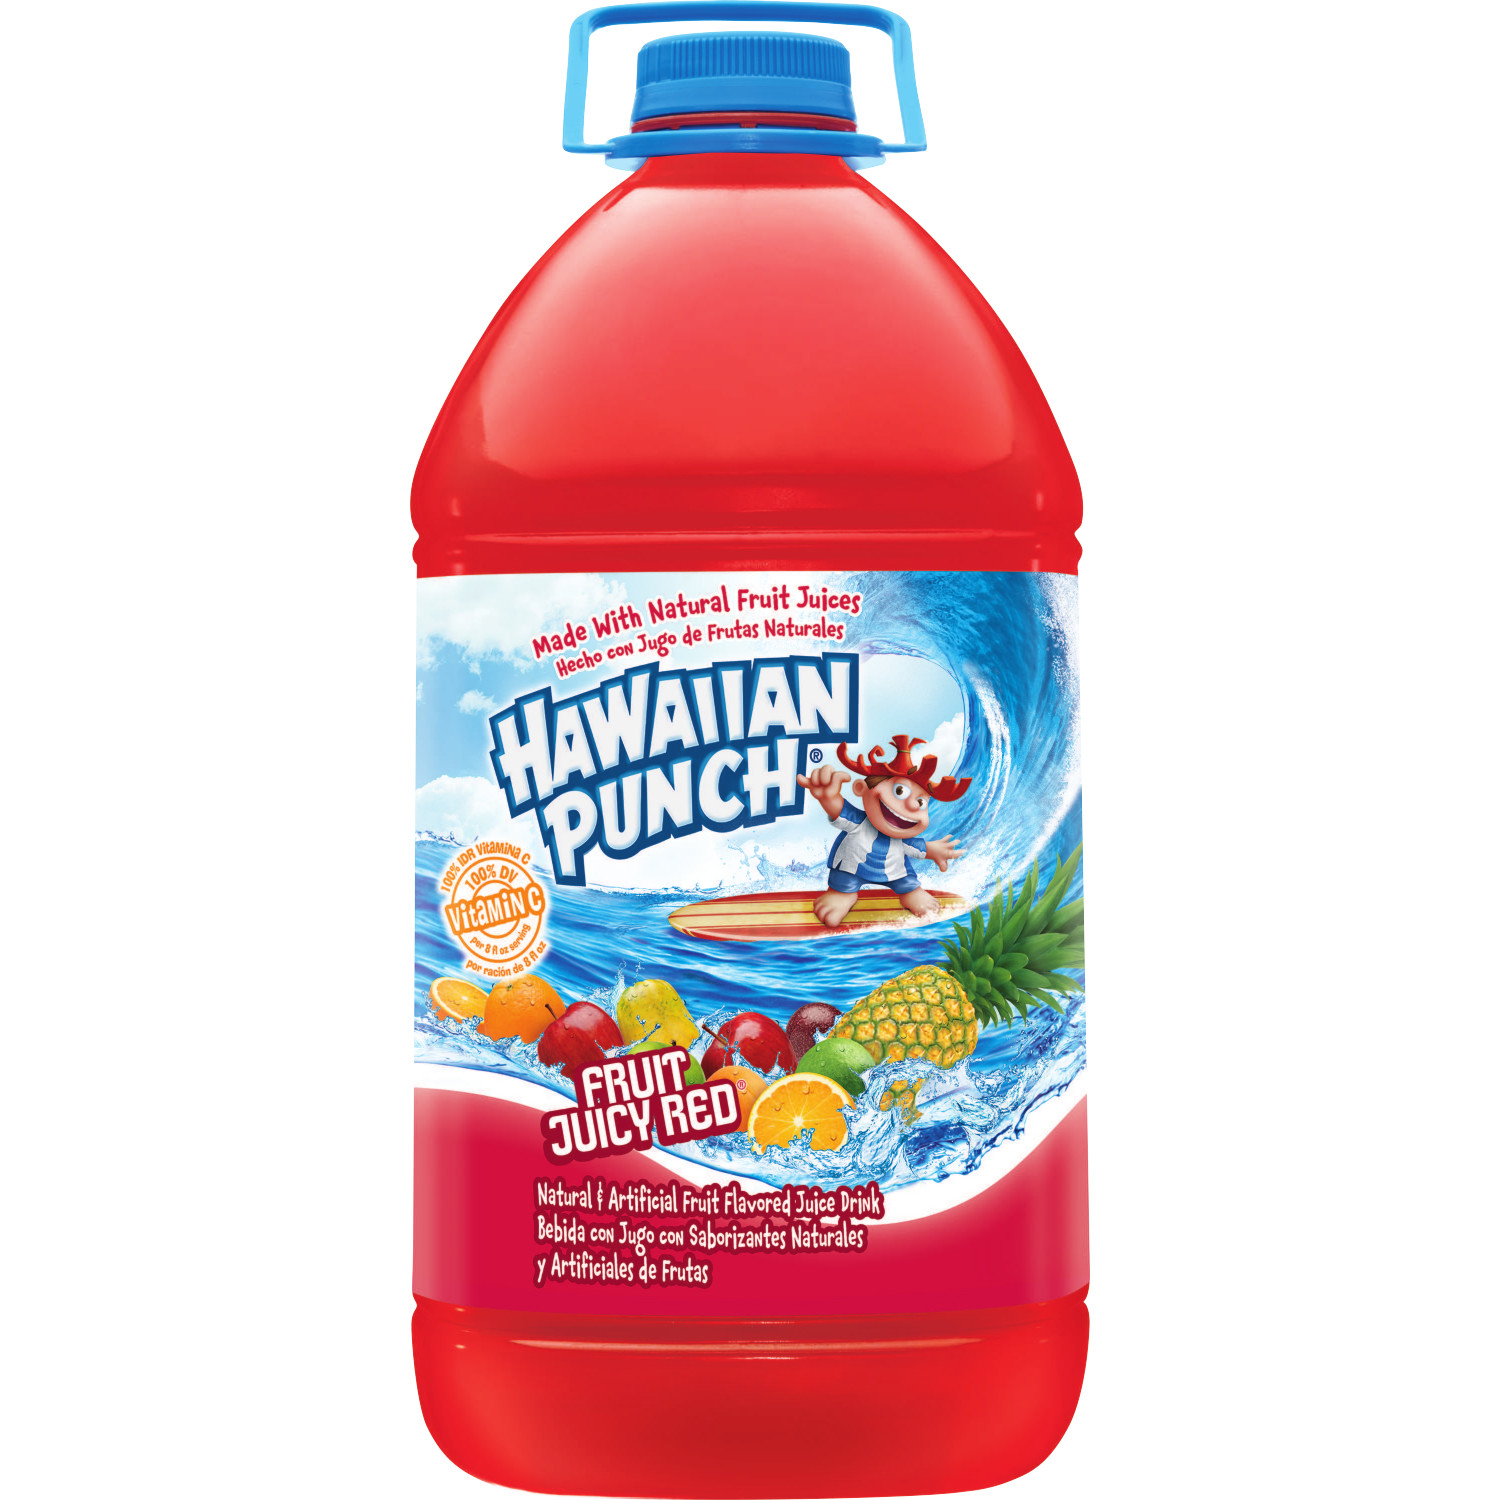 Hawaiian Punch Fruit Juice, Juicy Red, 128 Fl Oz, 1 Count